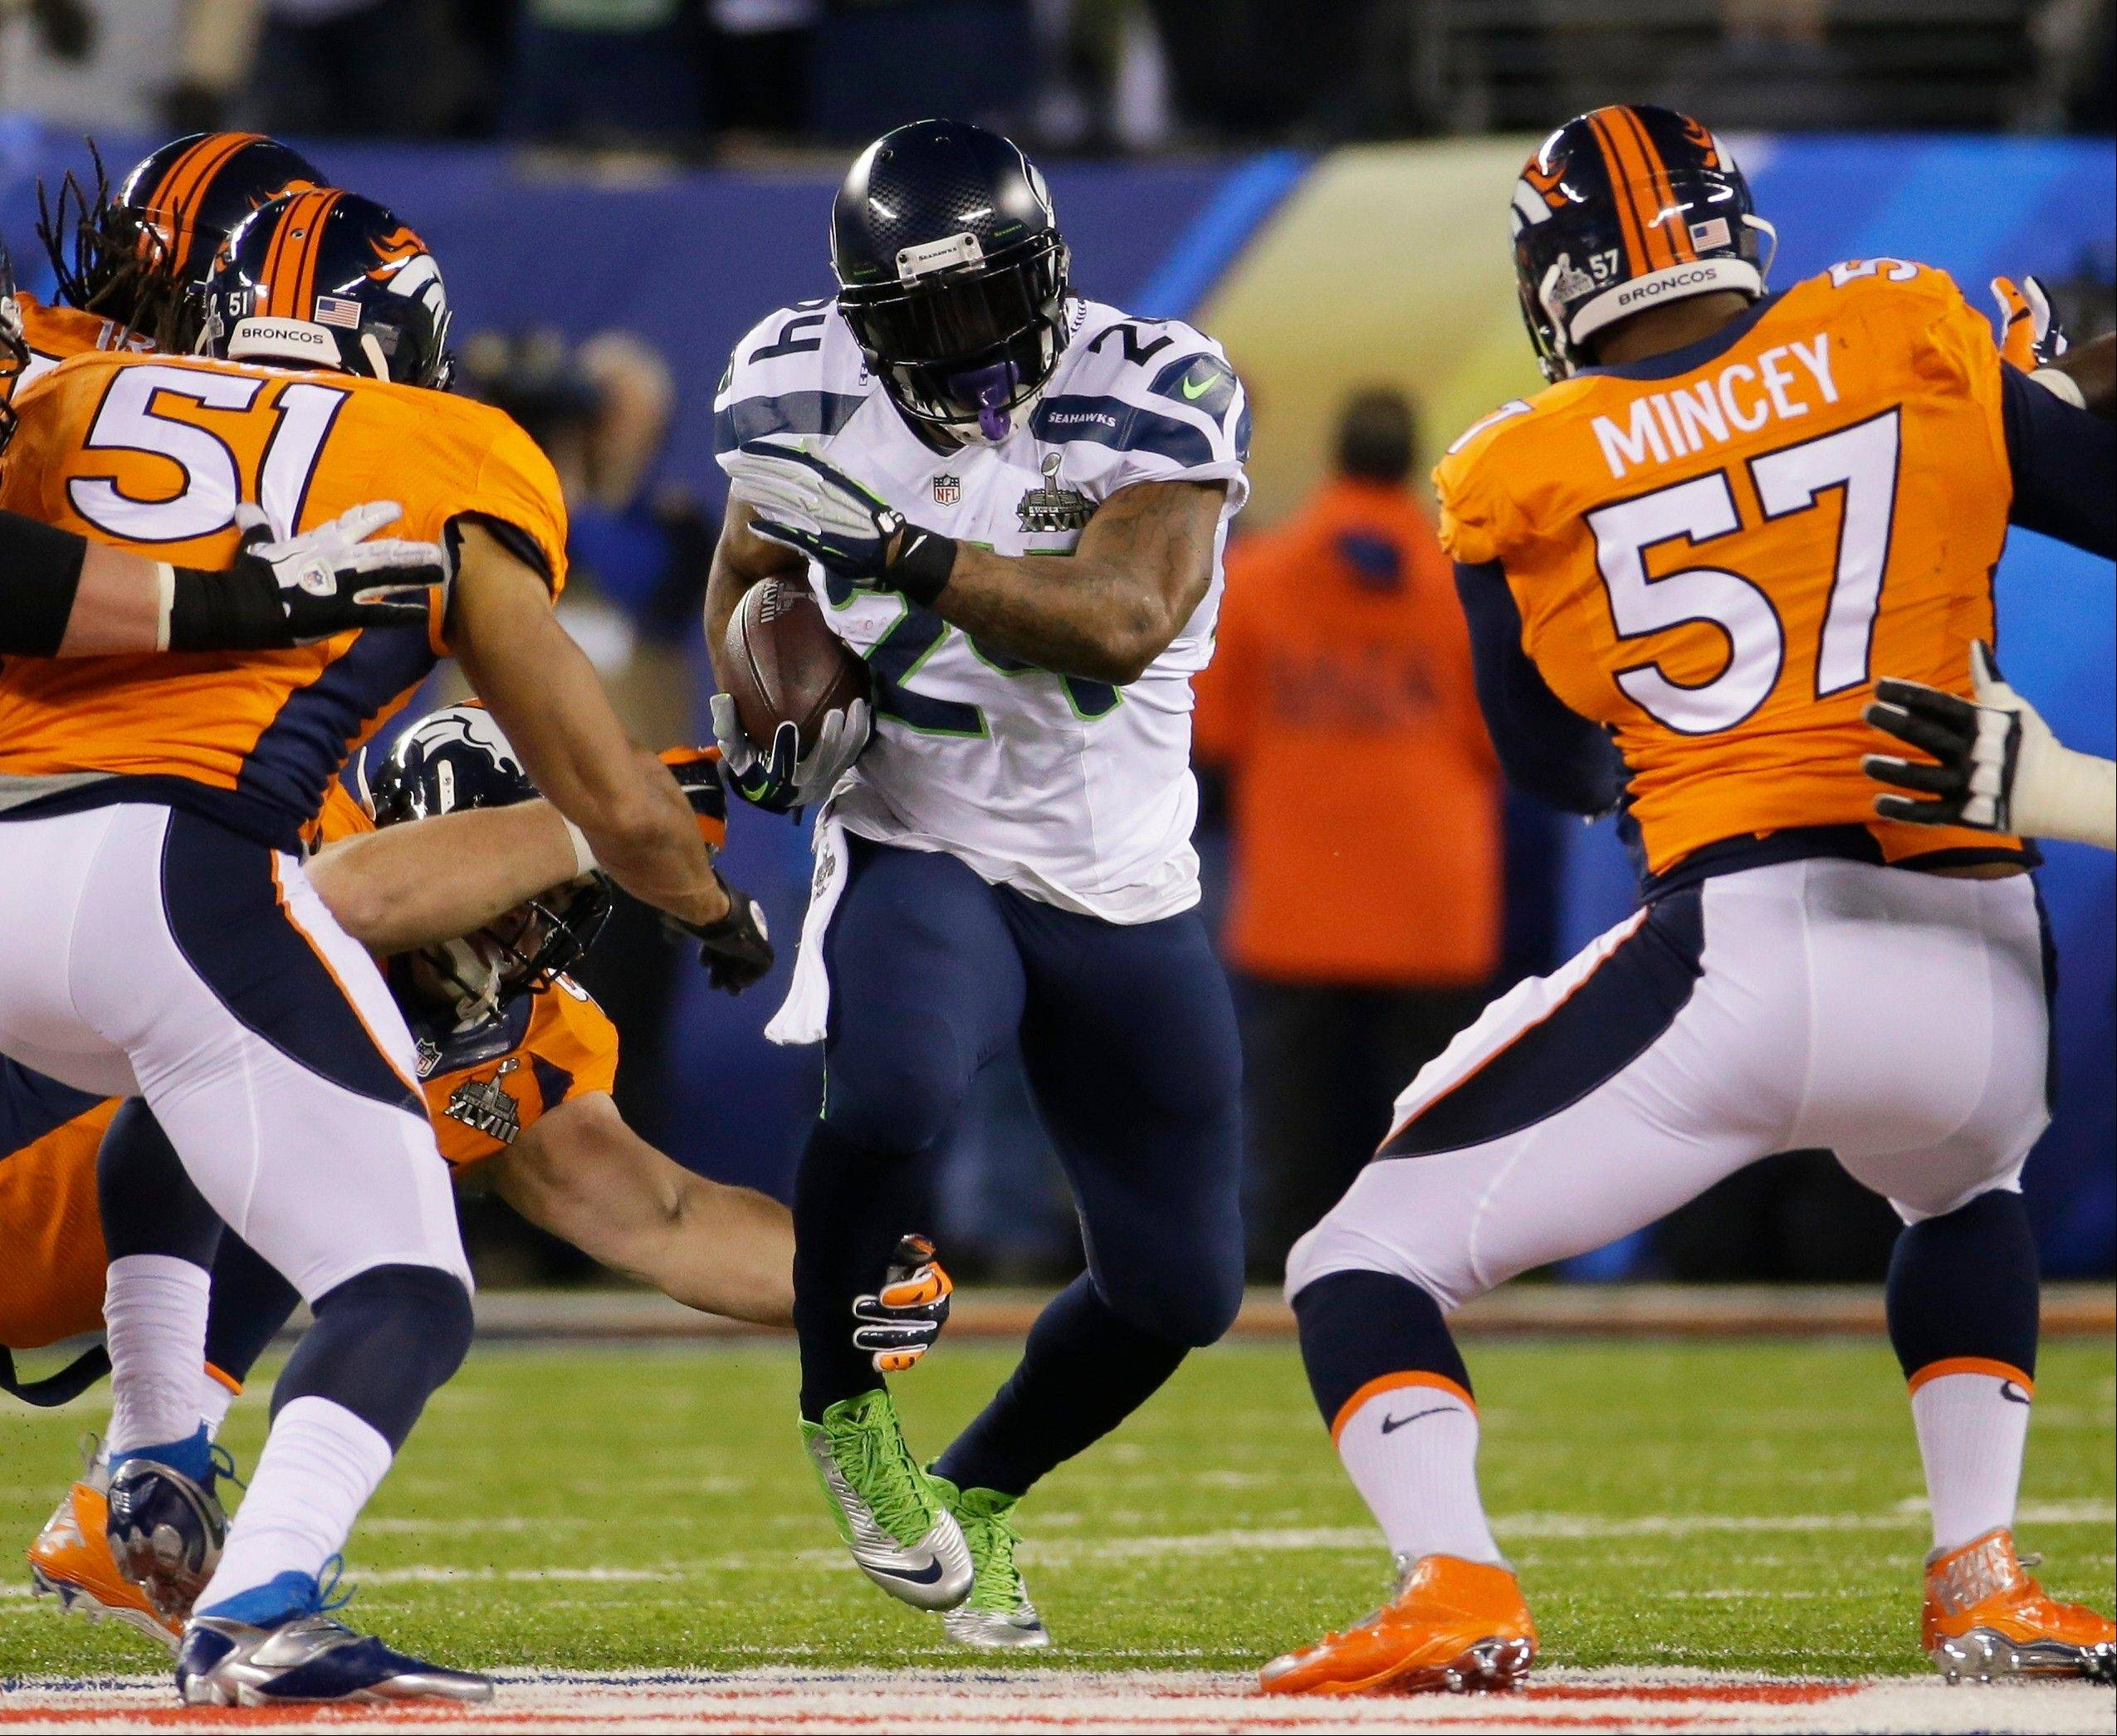 Seattle Seahawks' Marshawn Lynch (24) runs between Denver Broncos' Paris Lenon, left, and Jeremy Mincey, right, during the first half.